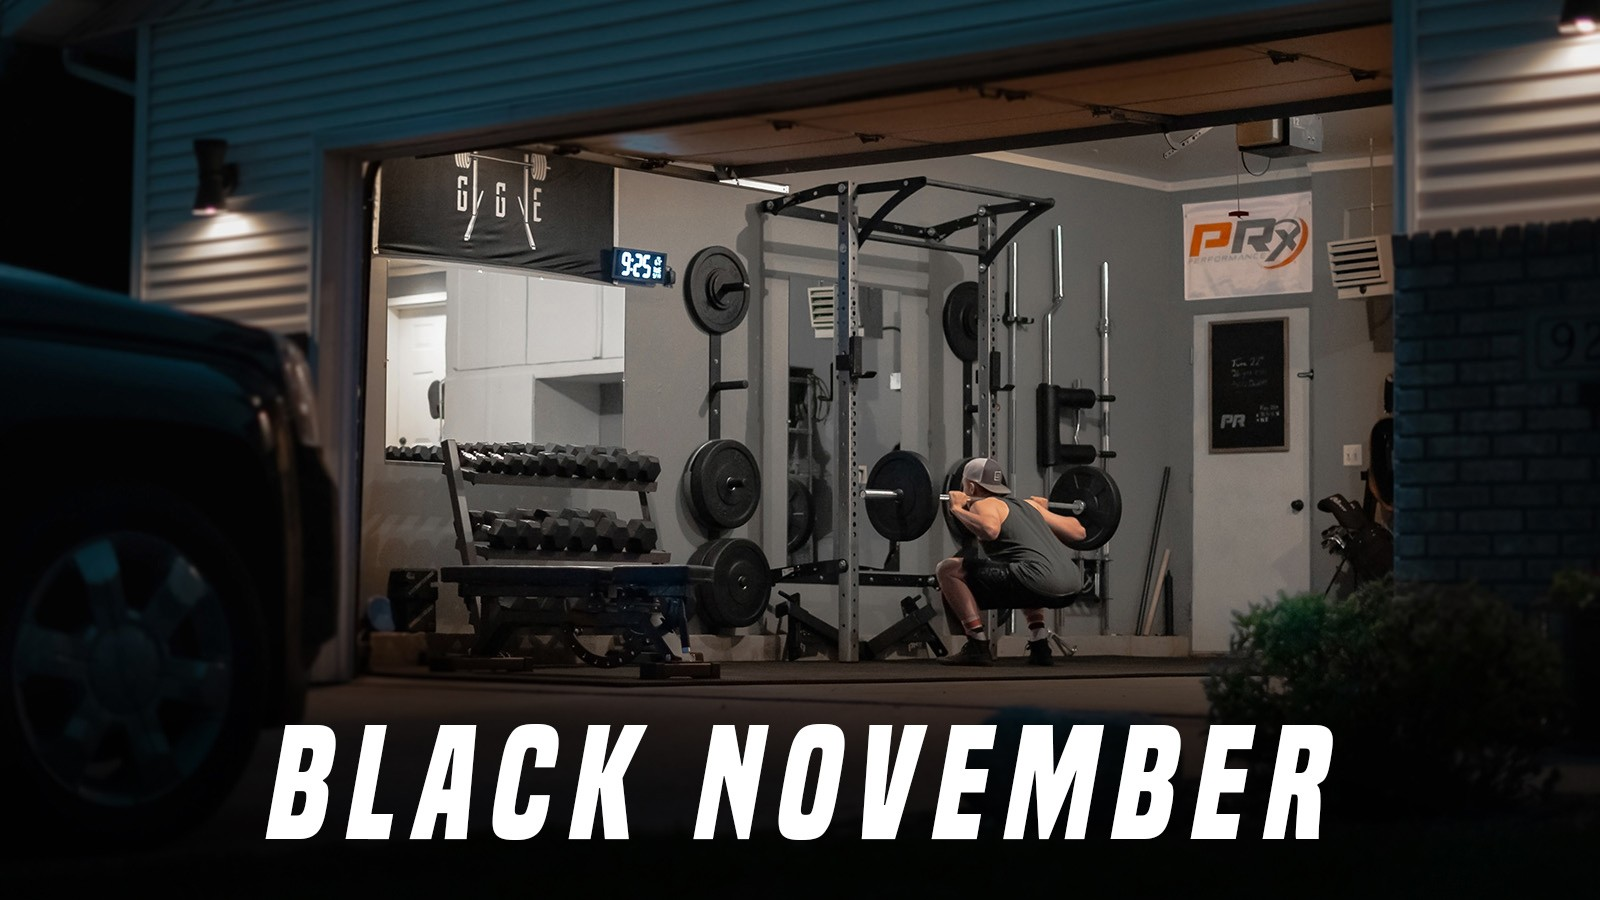 PRx Performance 2019 Black November - Black Friday - Cyber Monday deals and sales